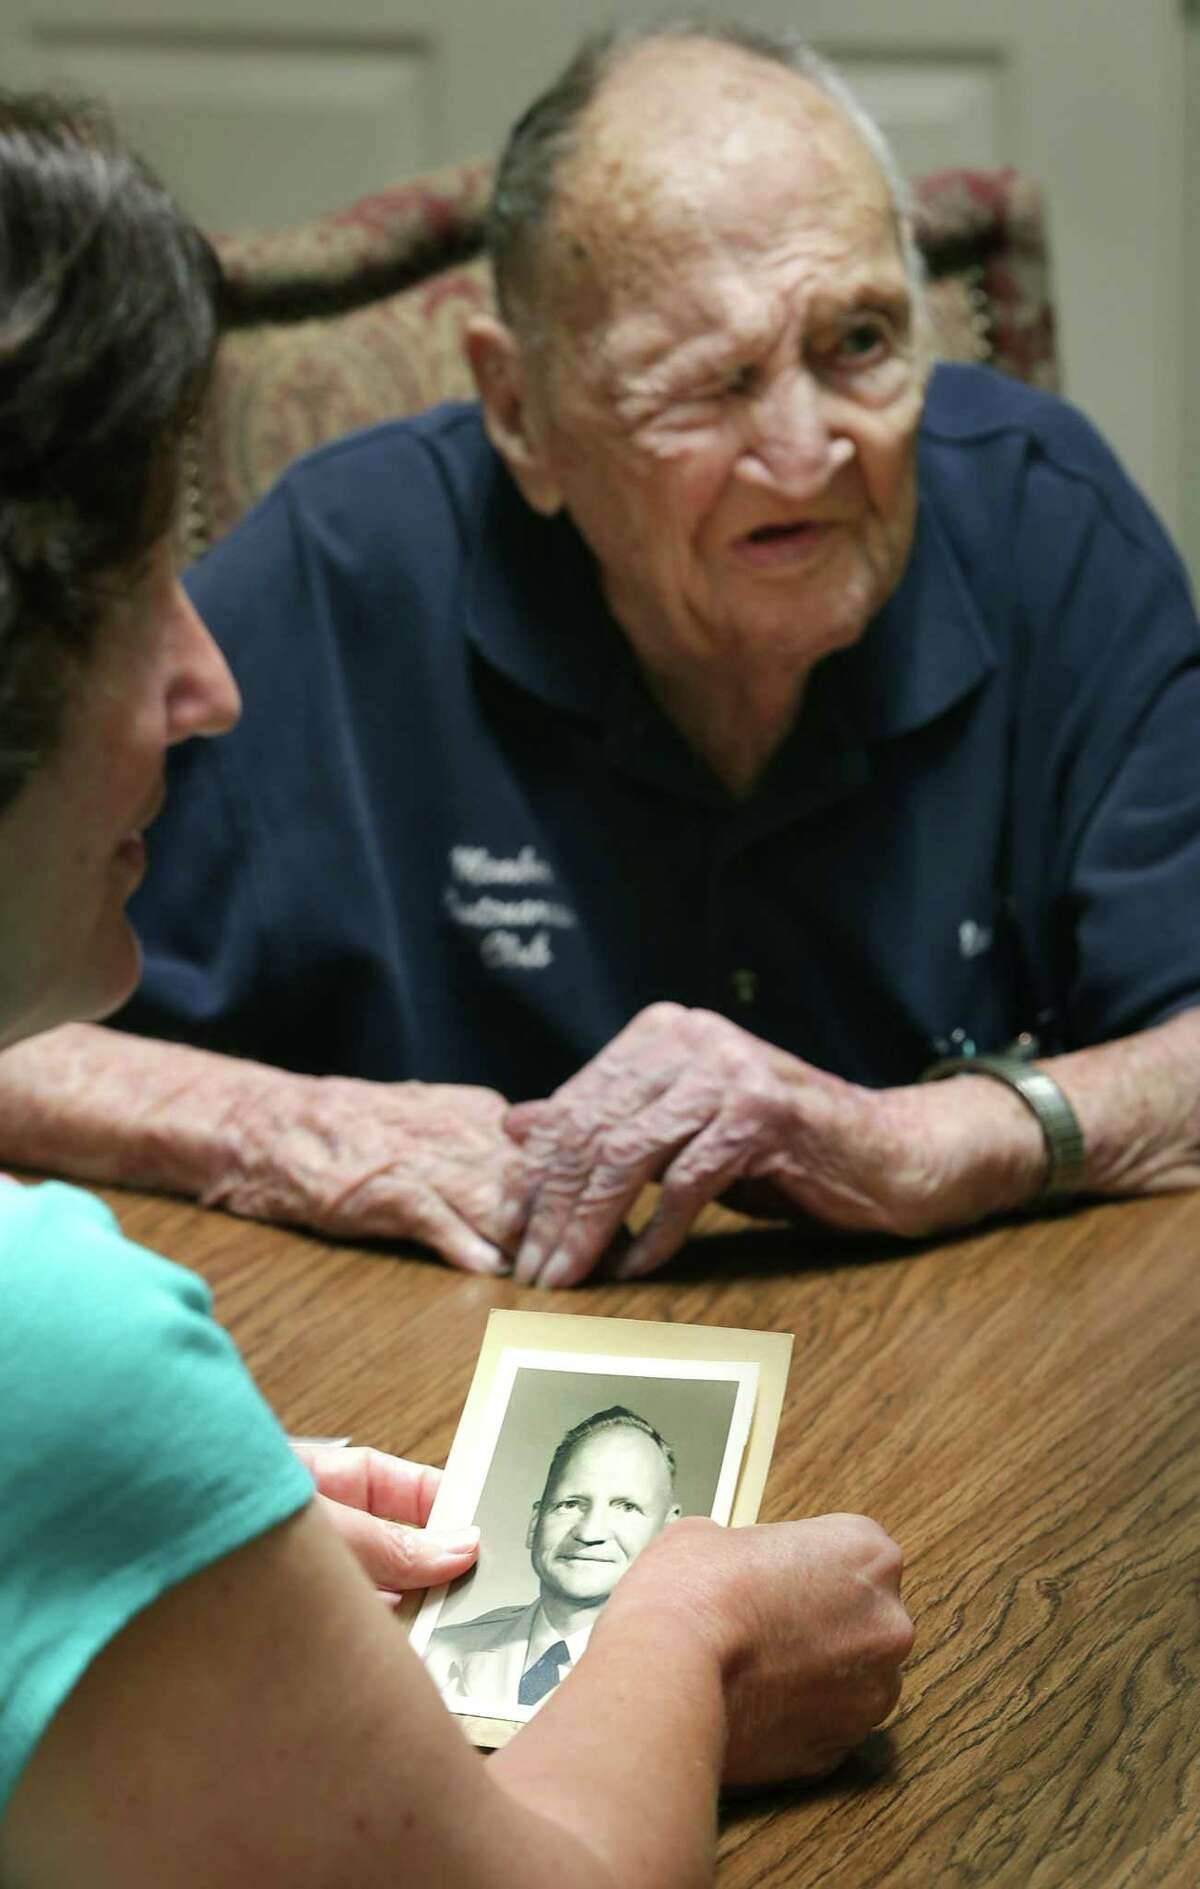 Eileen Friedeck, left, holds an old photo of her father Eugene Ruf, a veteran of World War II, as he is interviewed during the celebration of his 108th birthday on Wednesday, April 19, 2017, at Brookdale Senior Living Solutions.